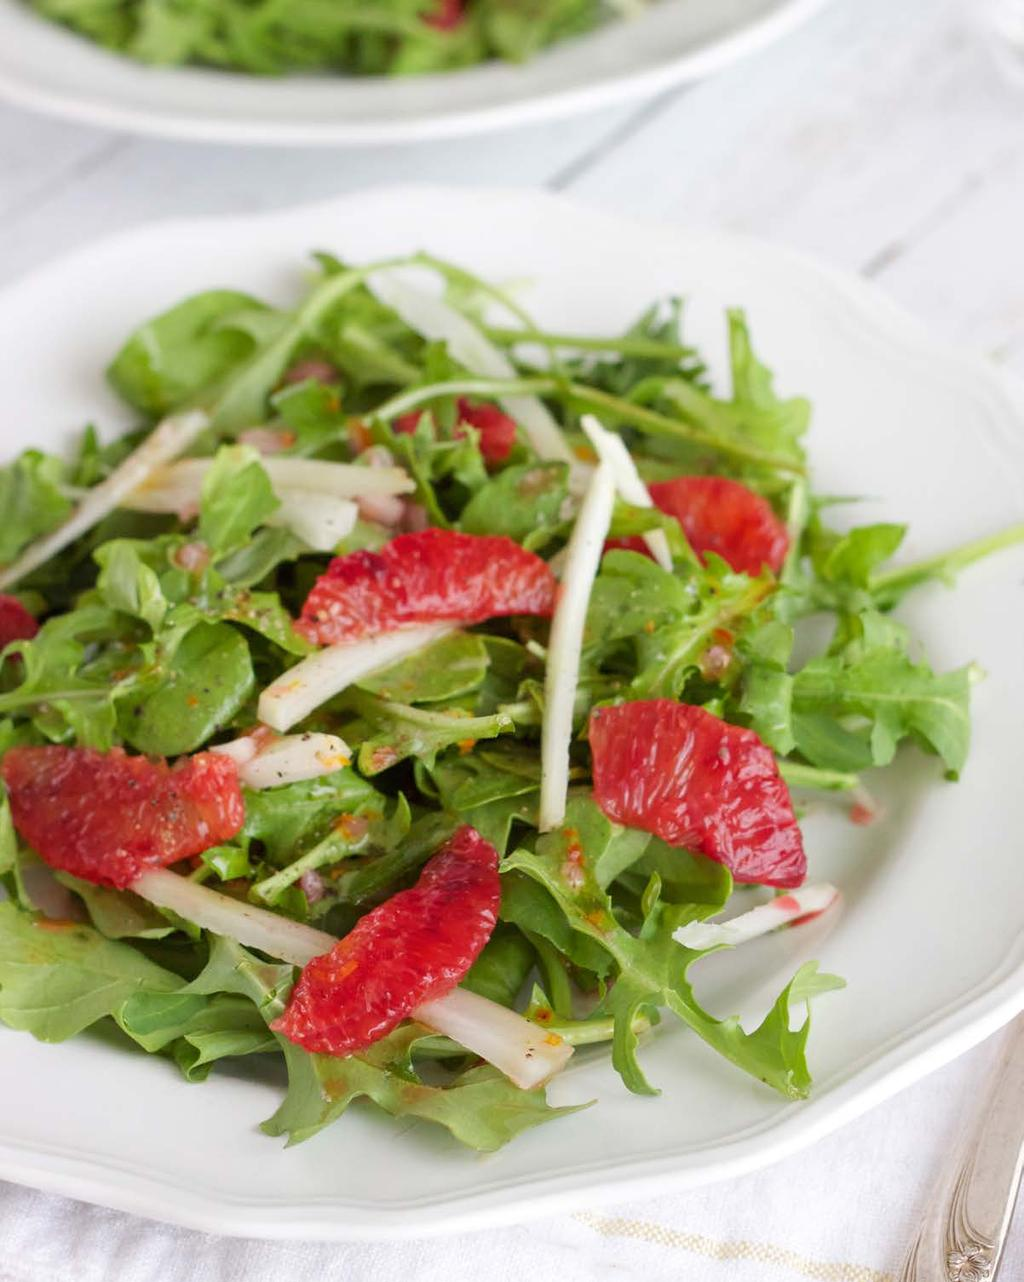 Blood Orange, Fennel & Arugula Salad SERVES 6 This light and refreshing salad balances out the rest of the meal with some raw, crunchy greens and slightly sweet blood orange.